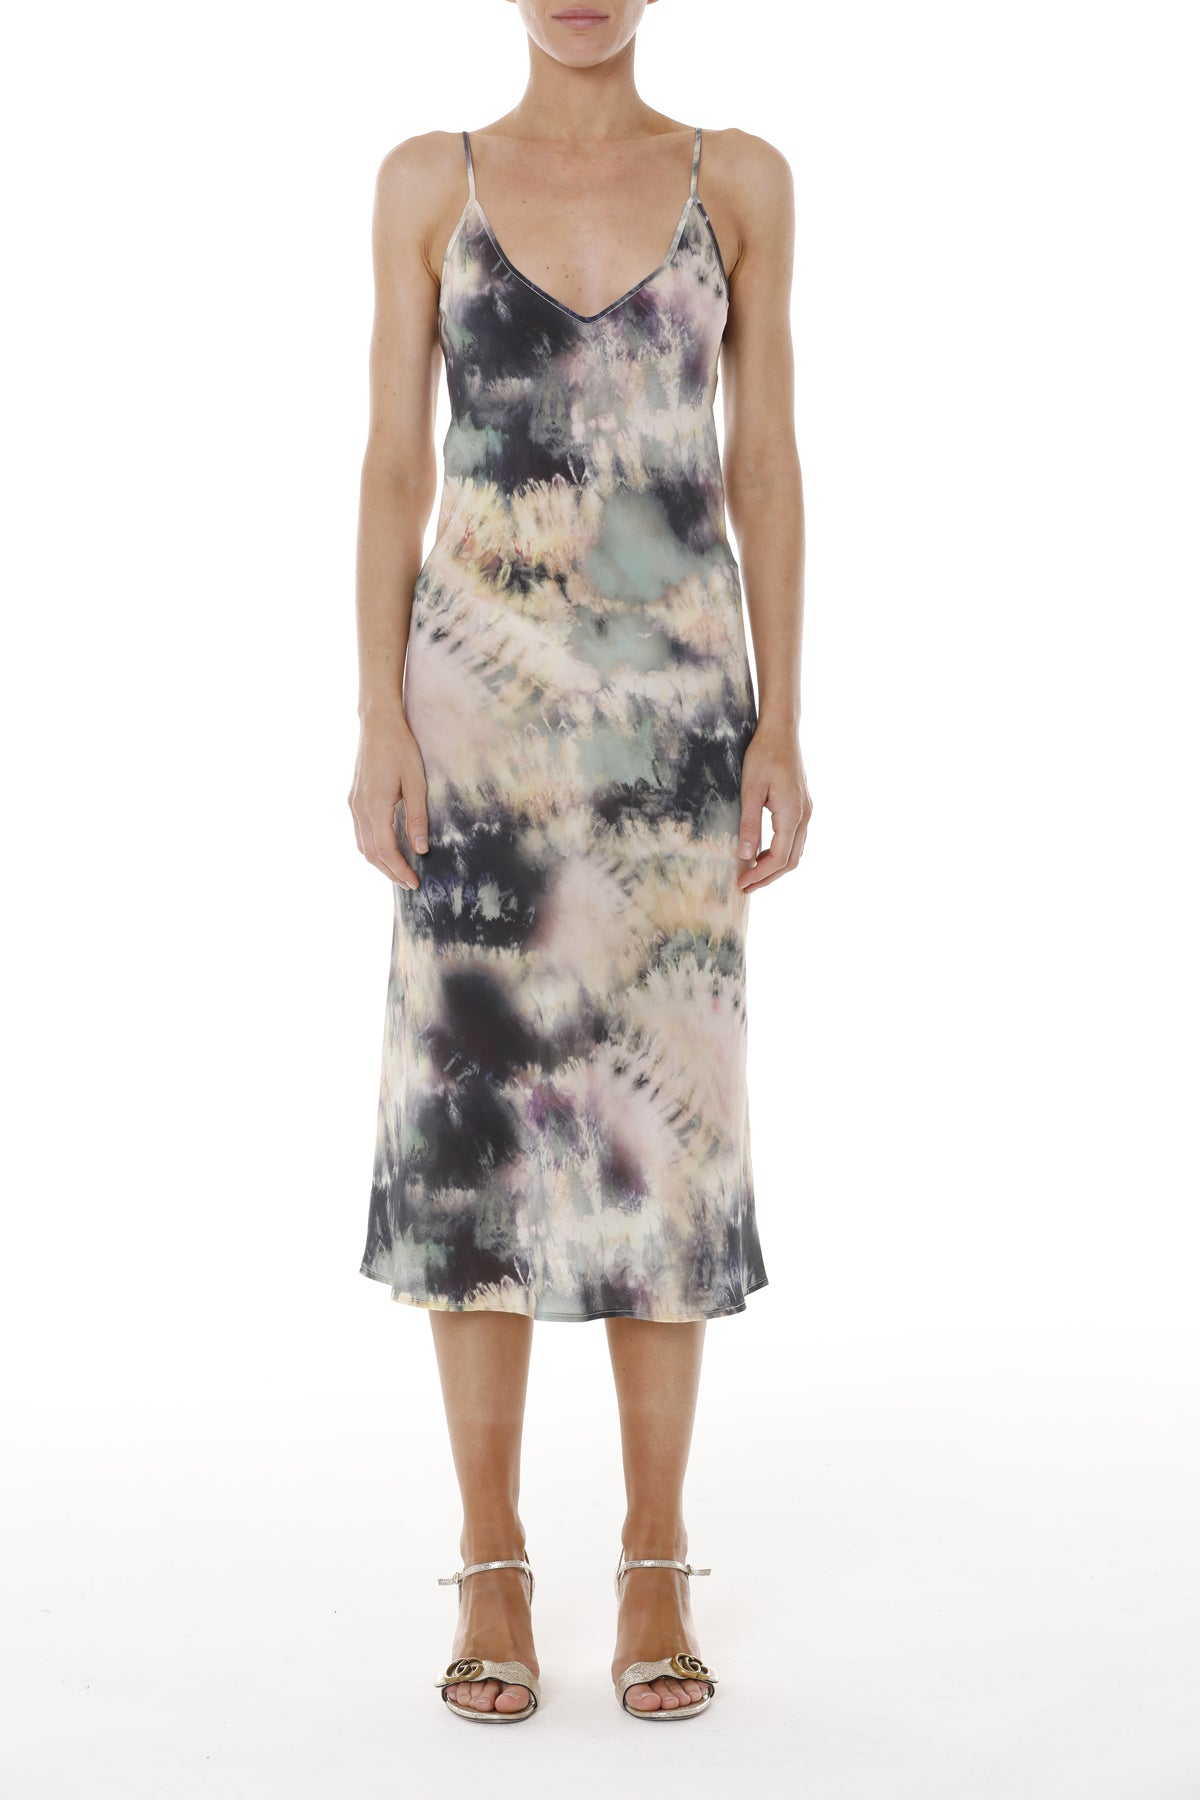 AMA New York Dress - Pink Tie Dye